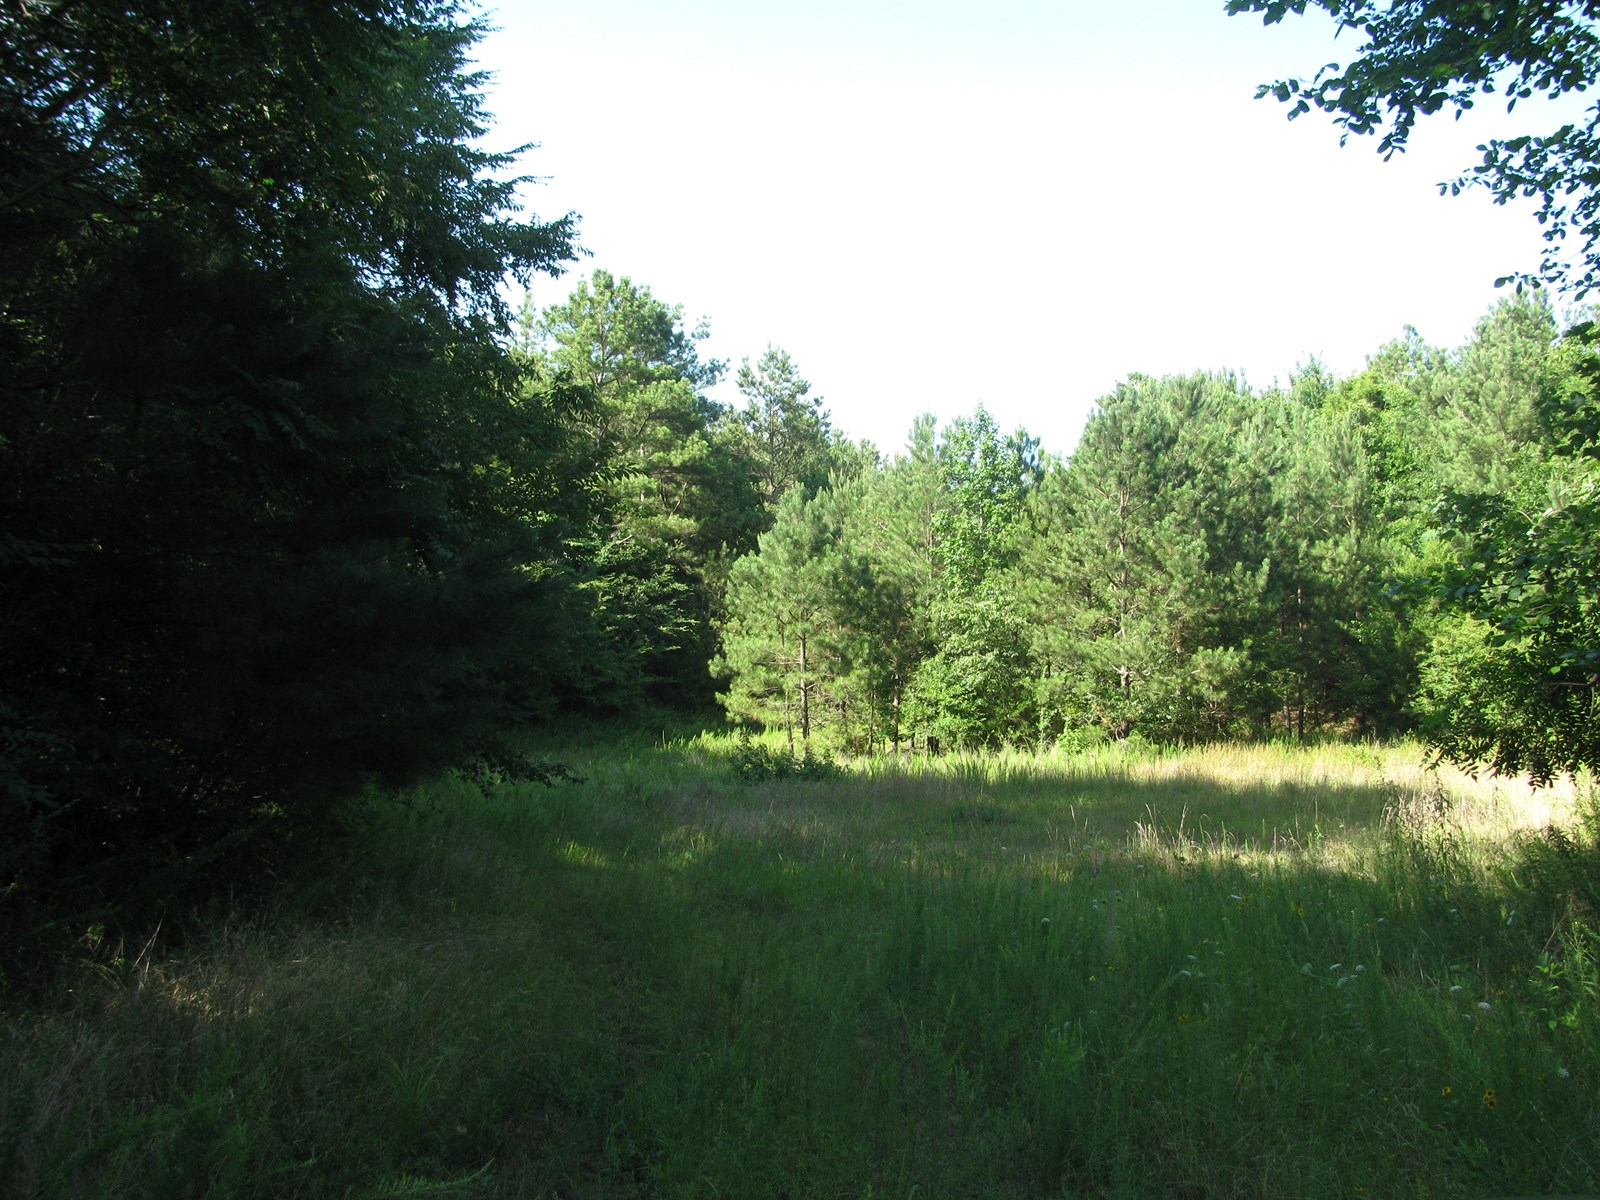 TN HUNTIING LAND FOR SALE, DEER, DUCK, POND, CREEK, TIMBER